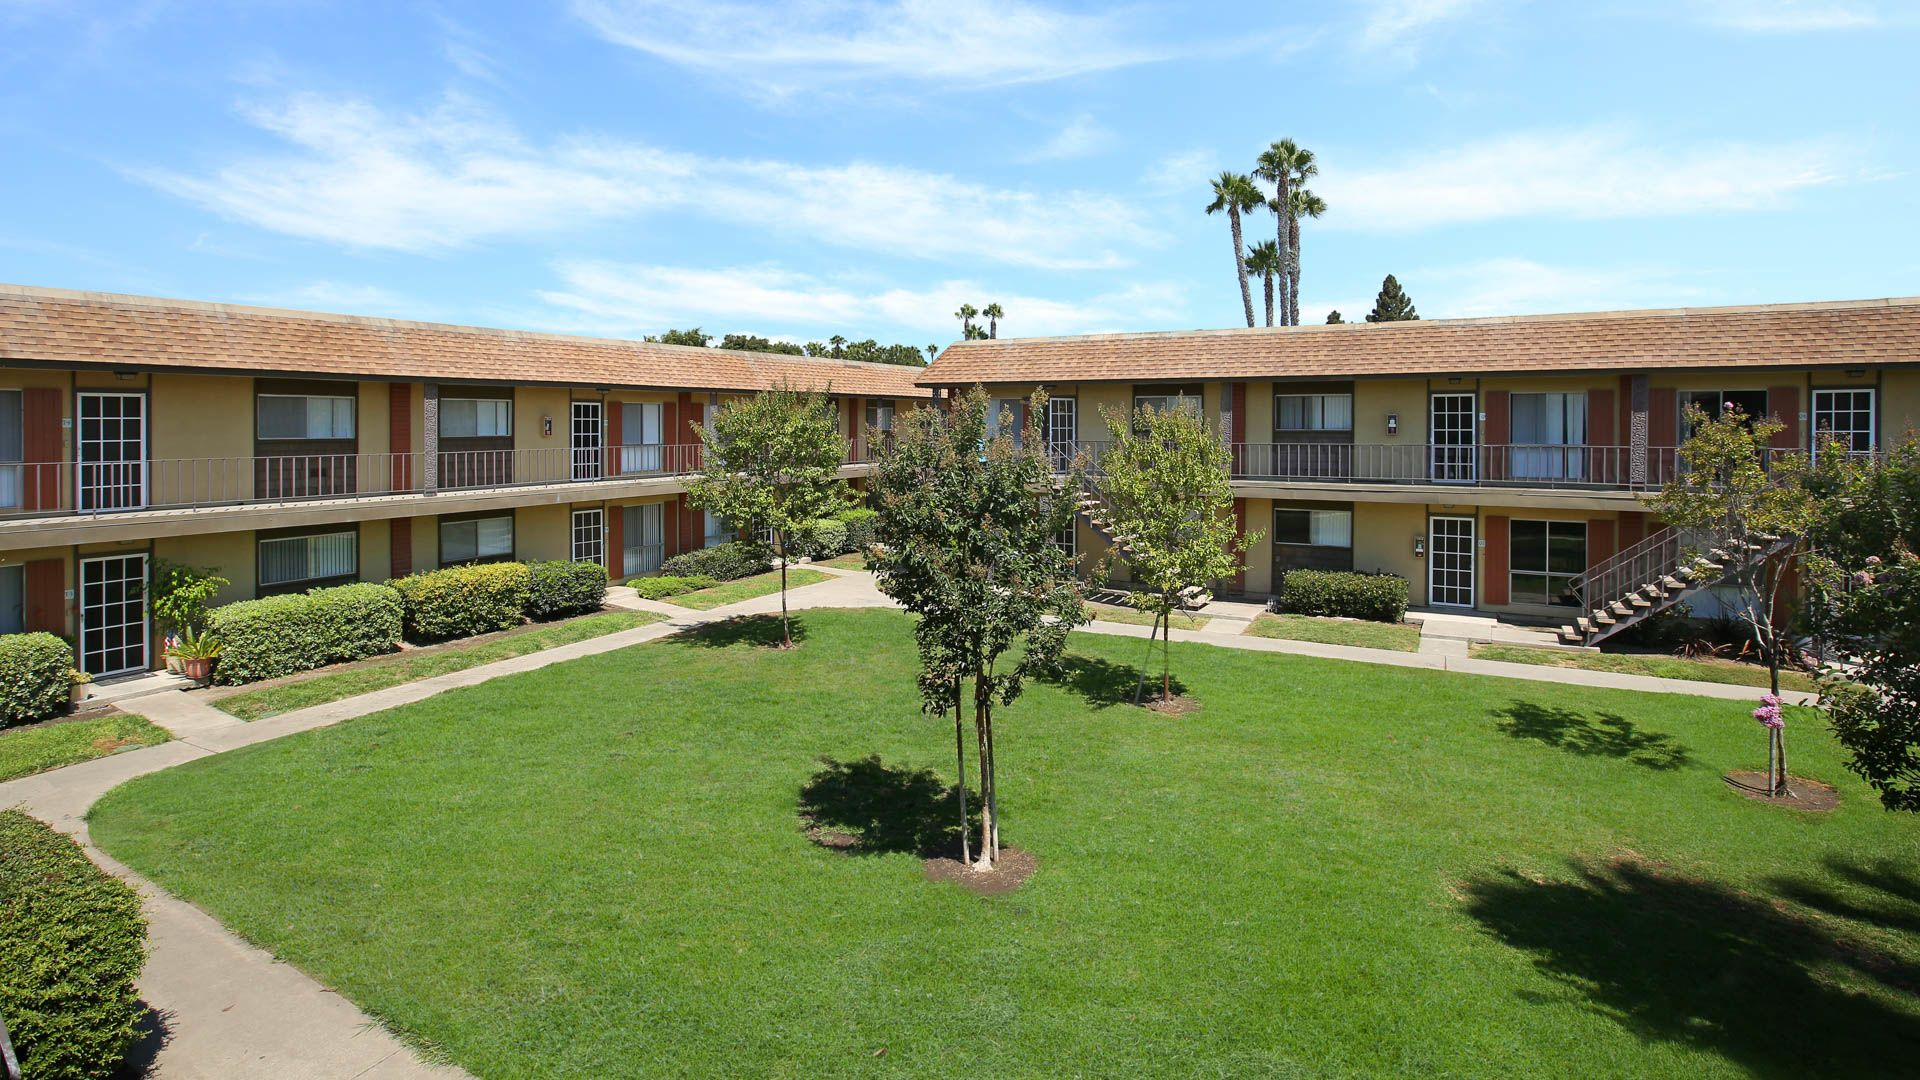 Regency Palms Apartments - Courtyard